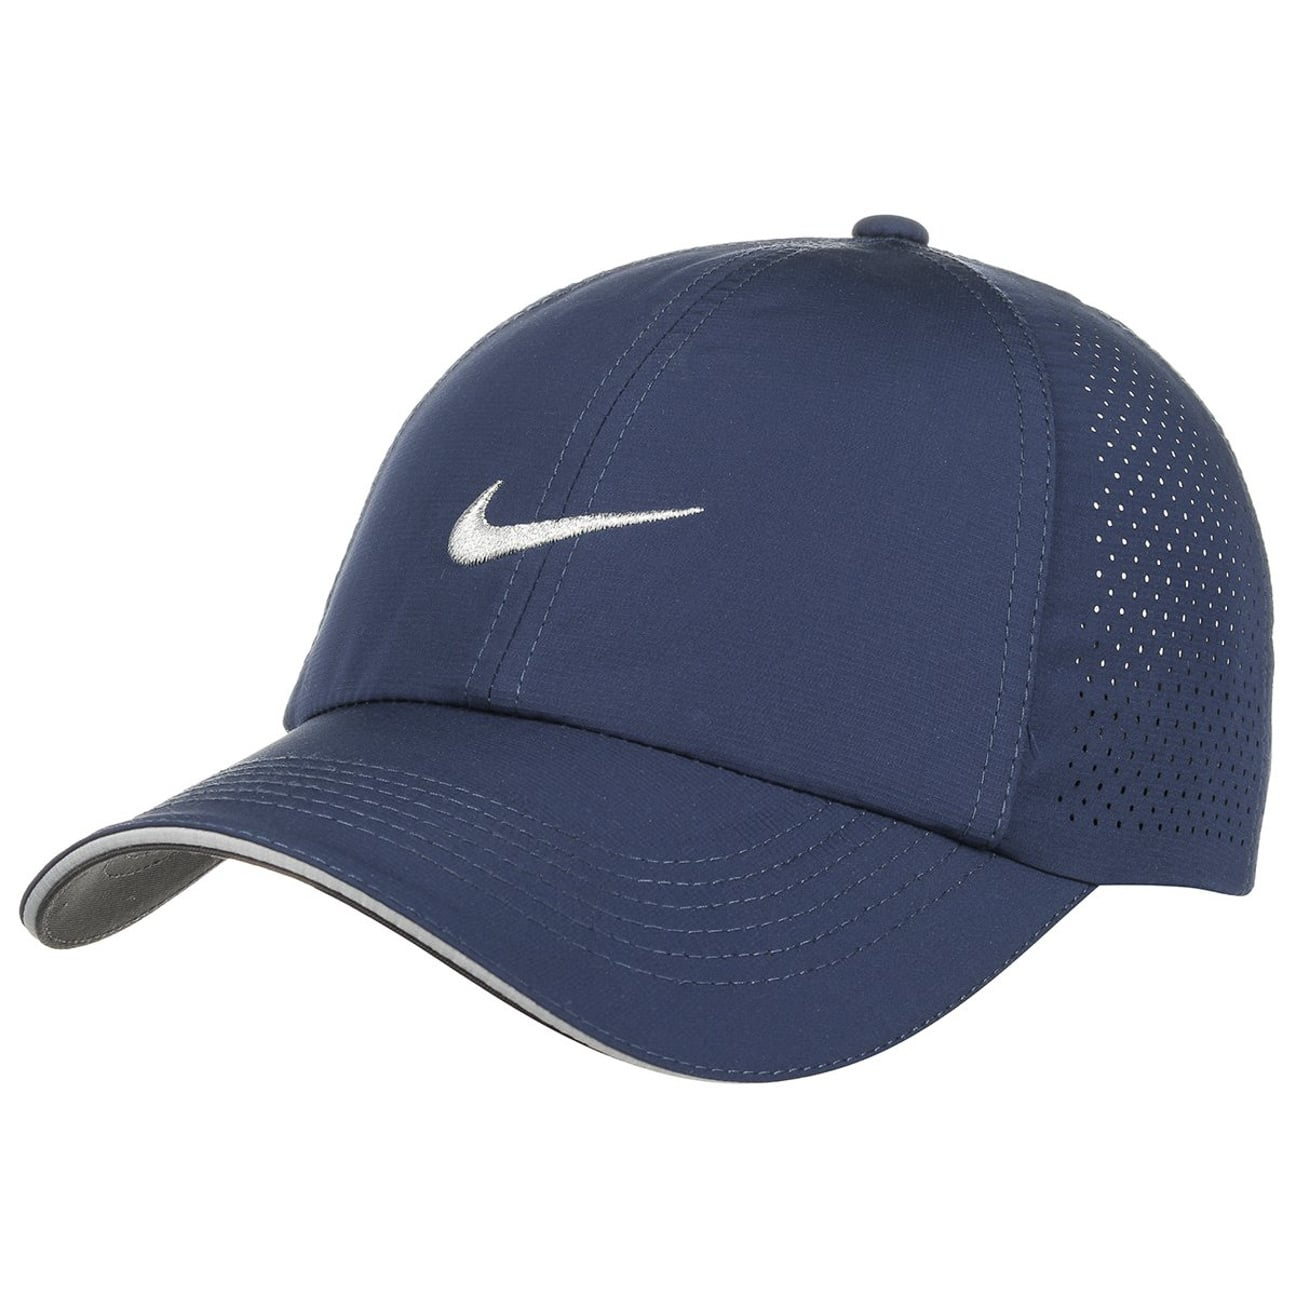 387ccebc024a3 ... Women´s Perforation Cap by Nike - blue 6 ...